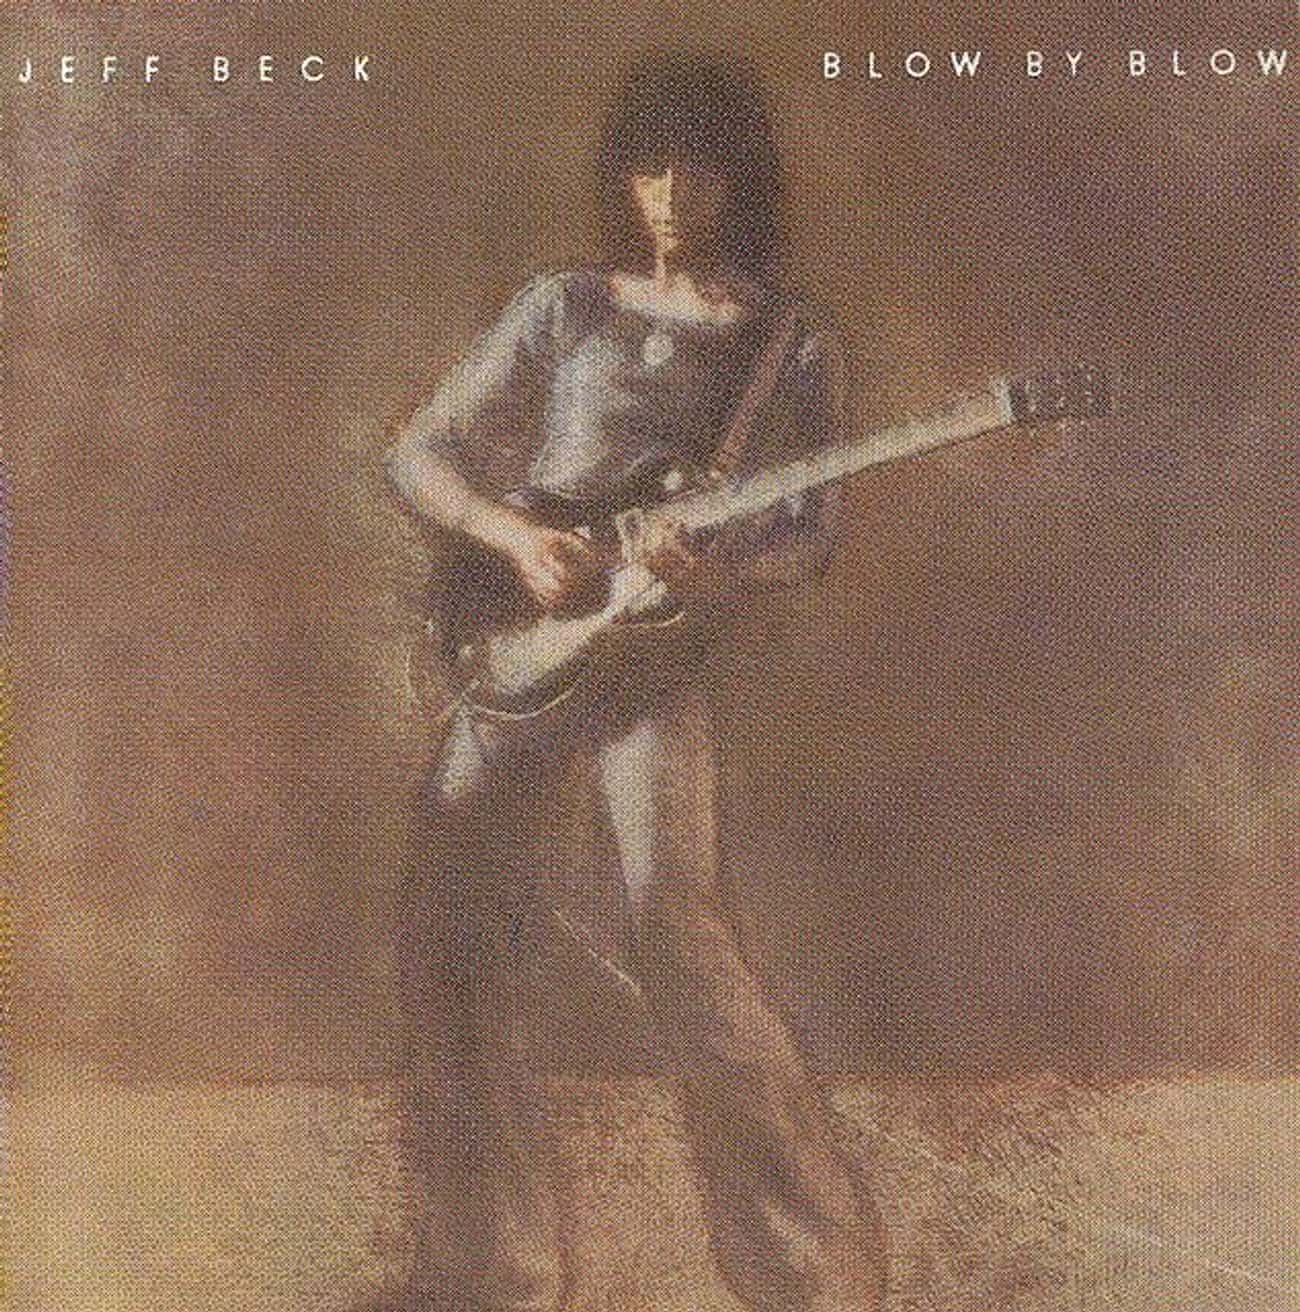 Blow by Blow is listed (or ranked) 1 on the list The Best Jeff Beck Albums of All Time